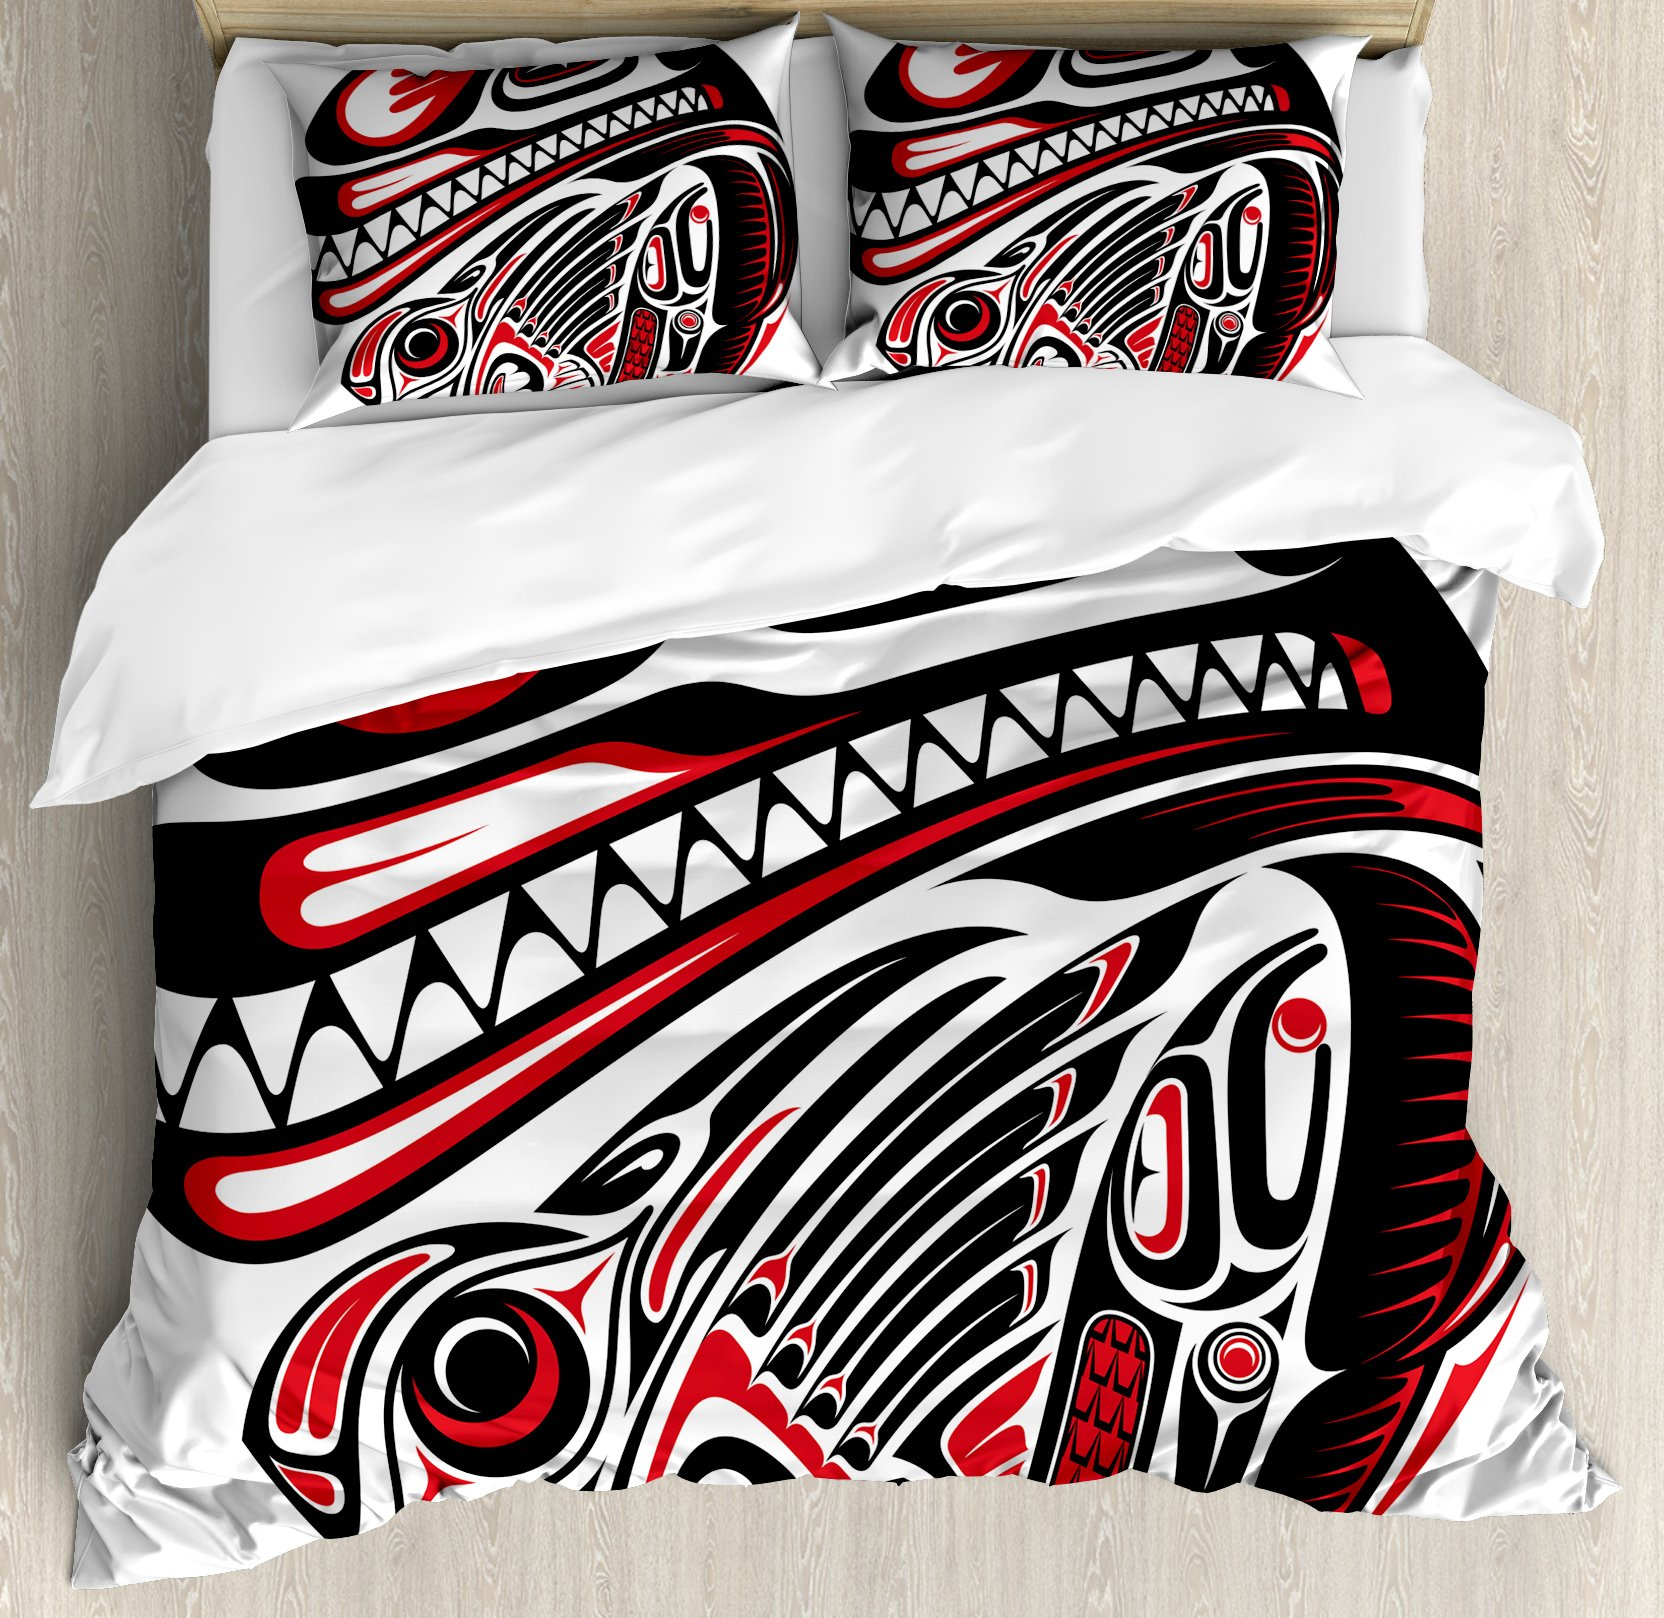 Ambesonne Tribal Duvet Cover Set Queen Size, Haida Style Animal Art Wild Ethnic Eagle and Killer Dog with Sharp Teeth Print, Decorative 3 Piece Bedding Set with 2 Pillow Shams, White Red Black